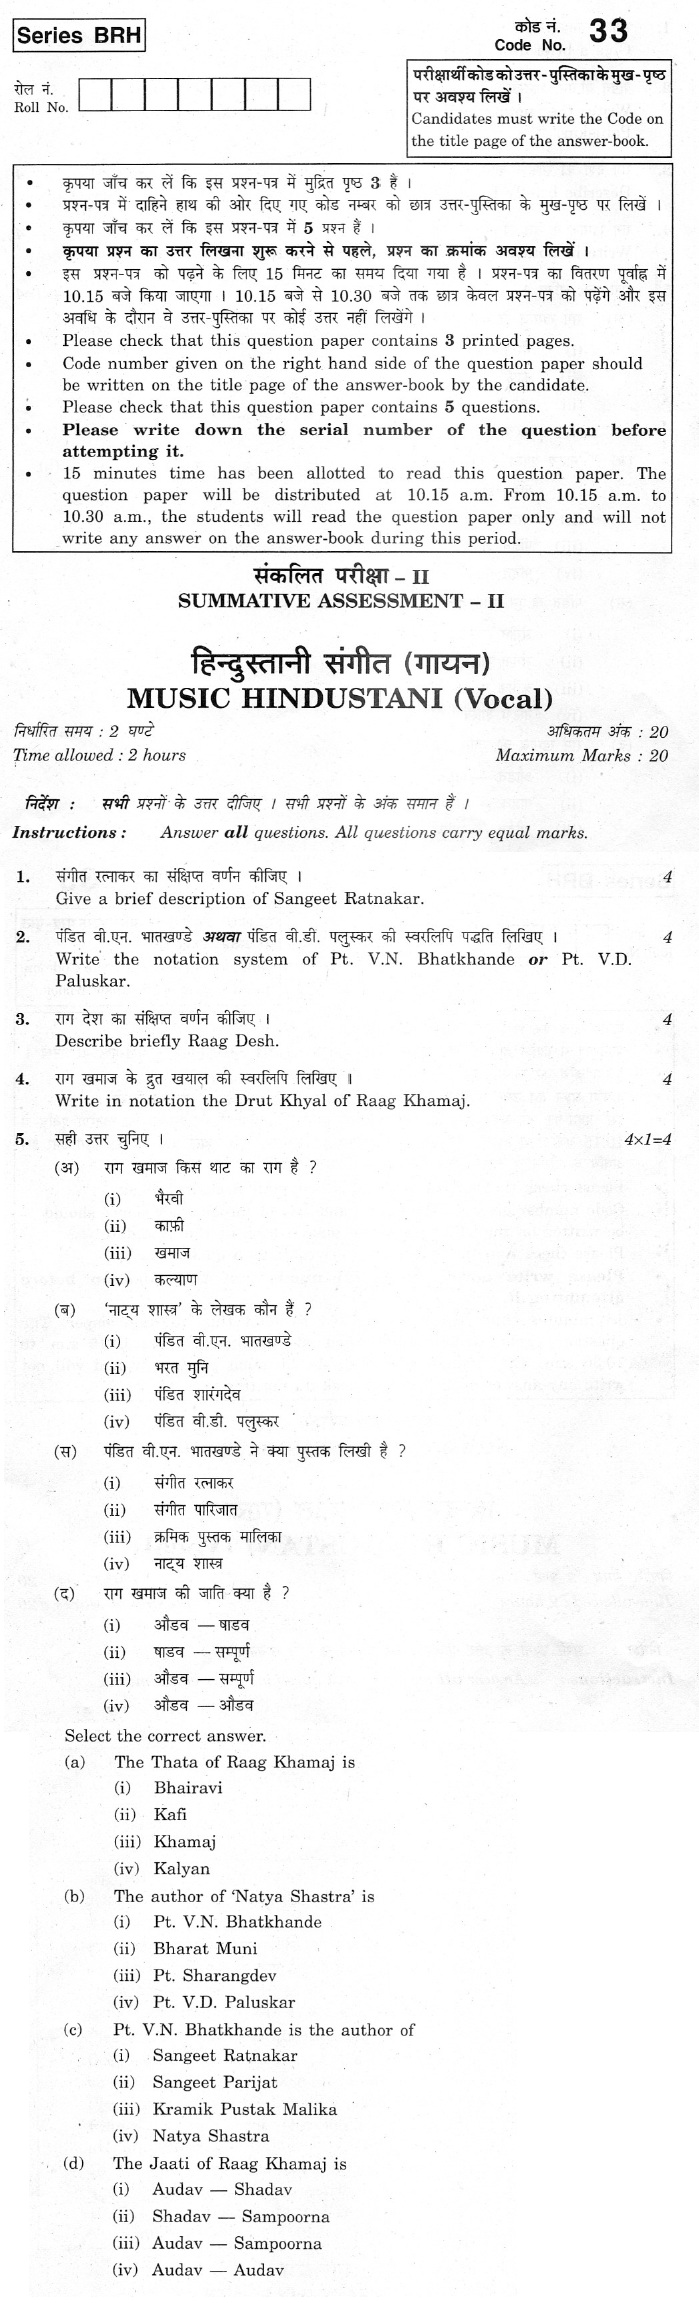 CBSE Class X Previous Year Question Papers 2012 Music Hindustani(Vocal)